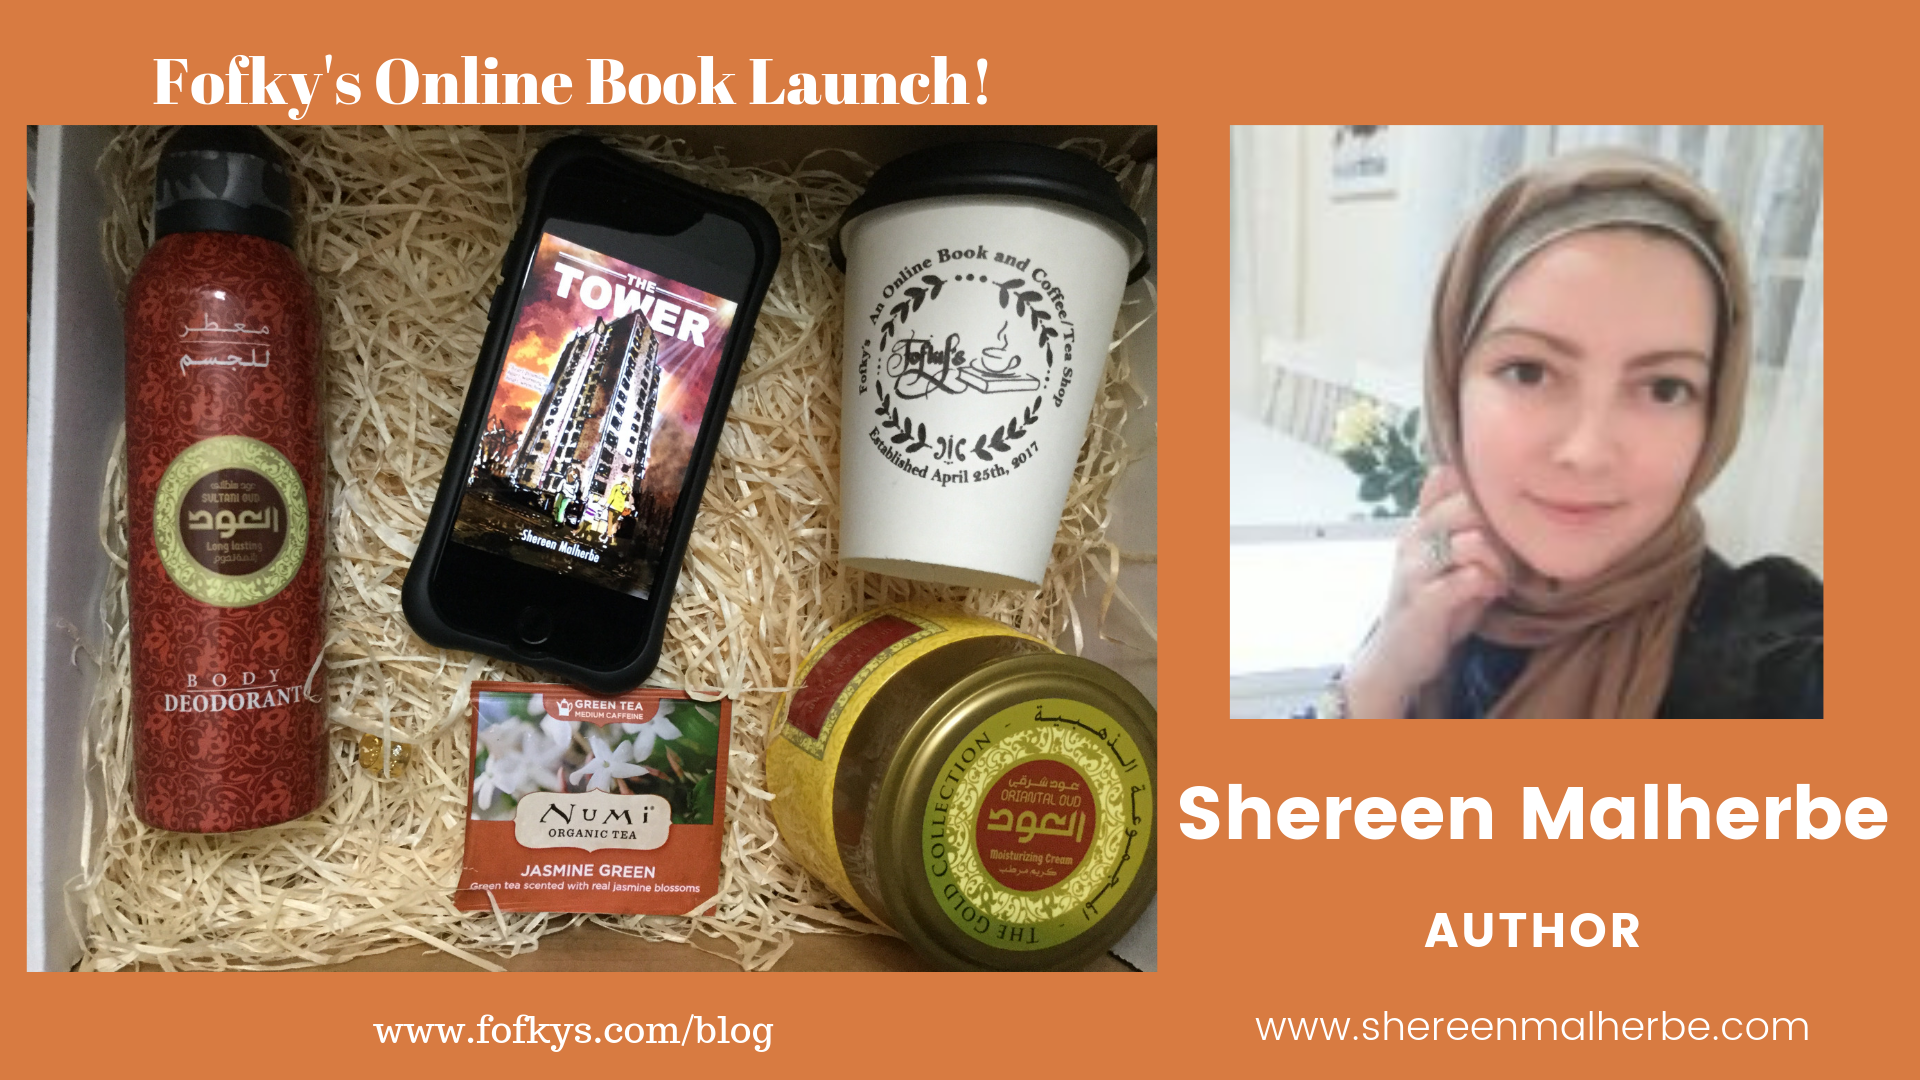 Shereen M fofkys banner the tower 4 10 19.png